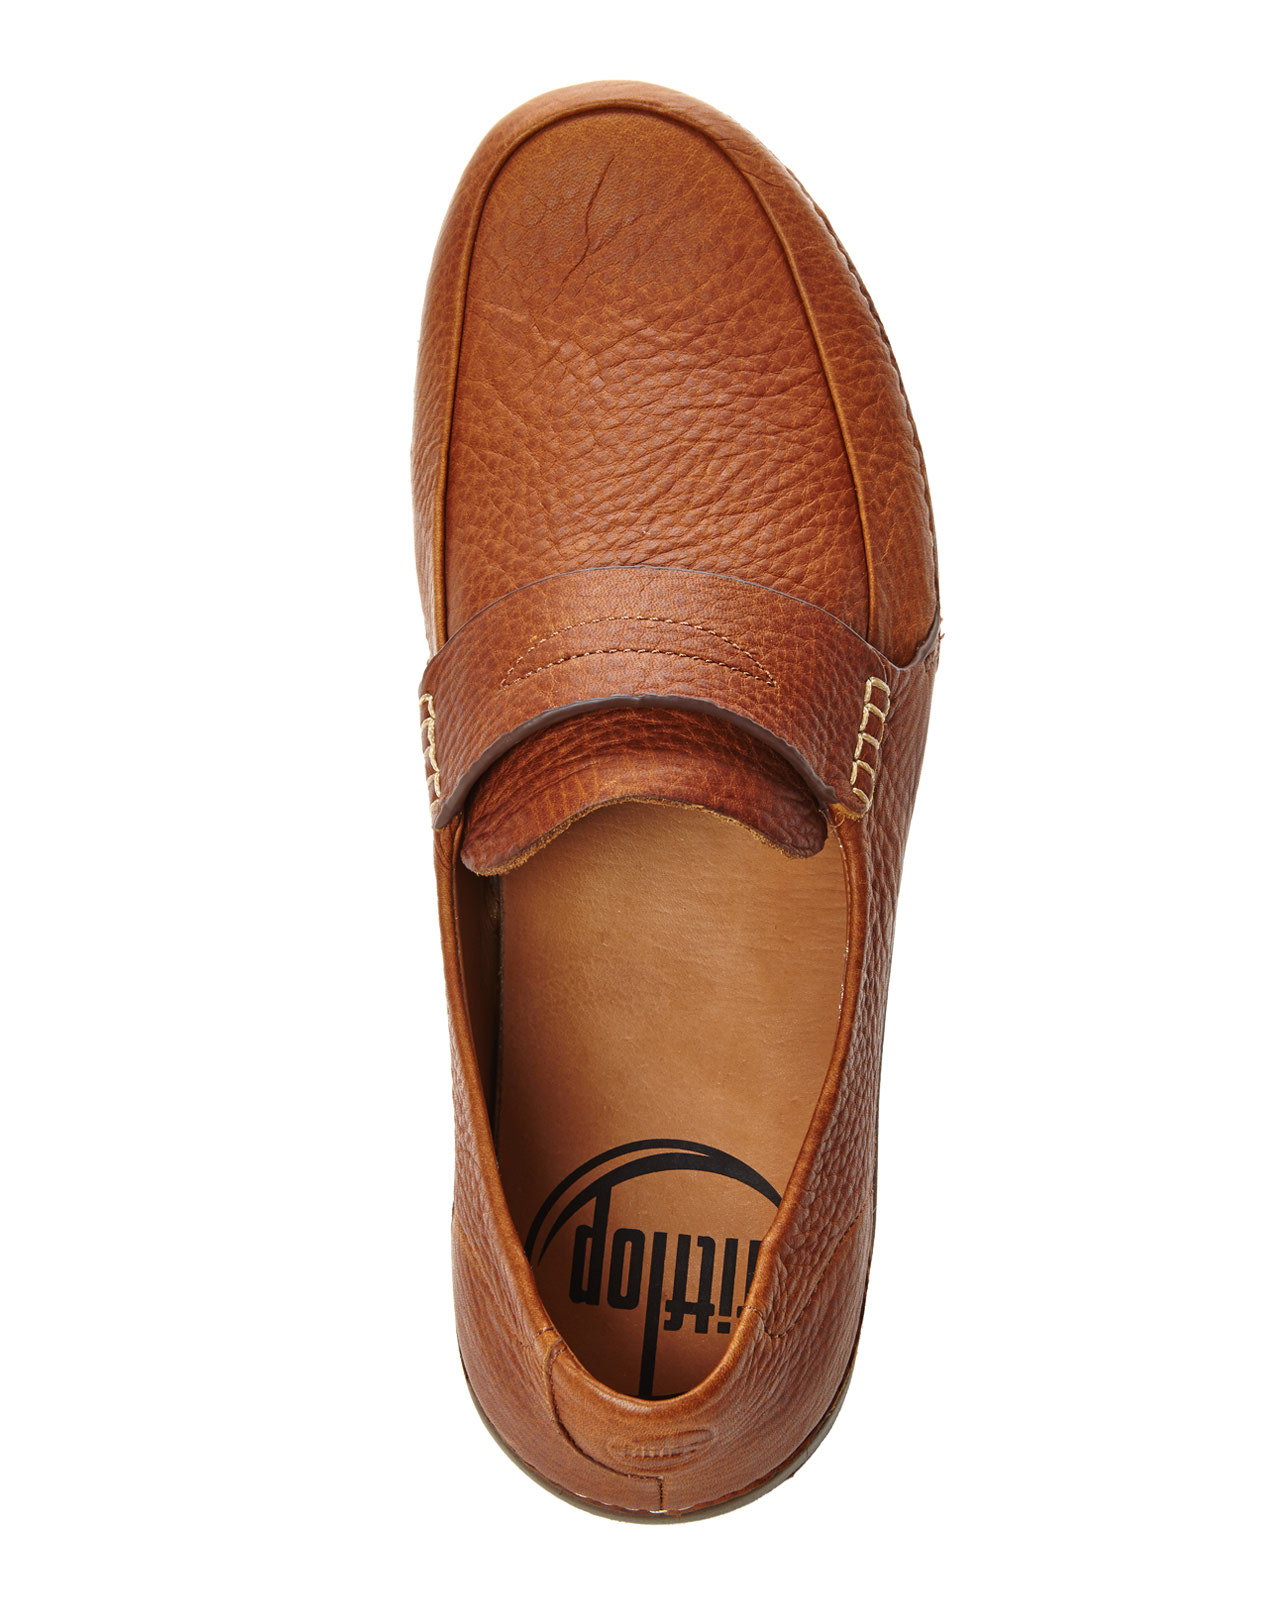 6e27d8a2dc1d27 Lyst - Fitflop Tan Flex Loafers in Brown for Men